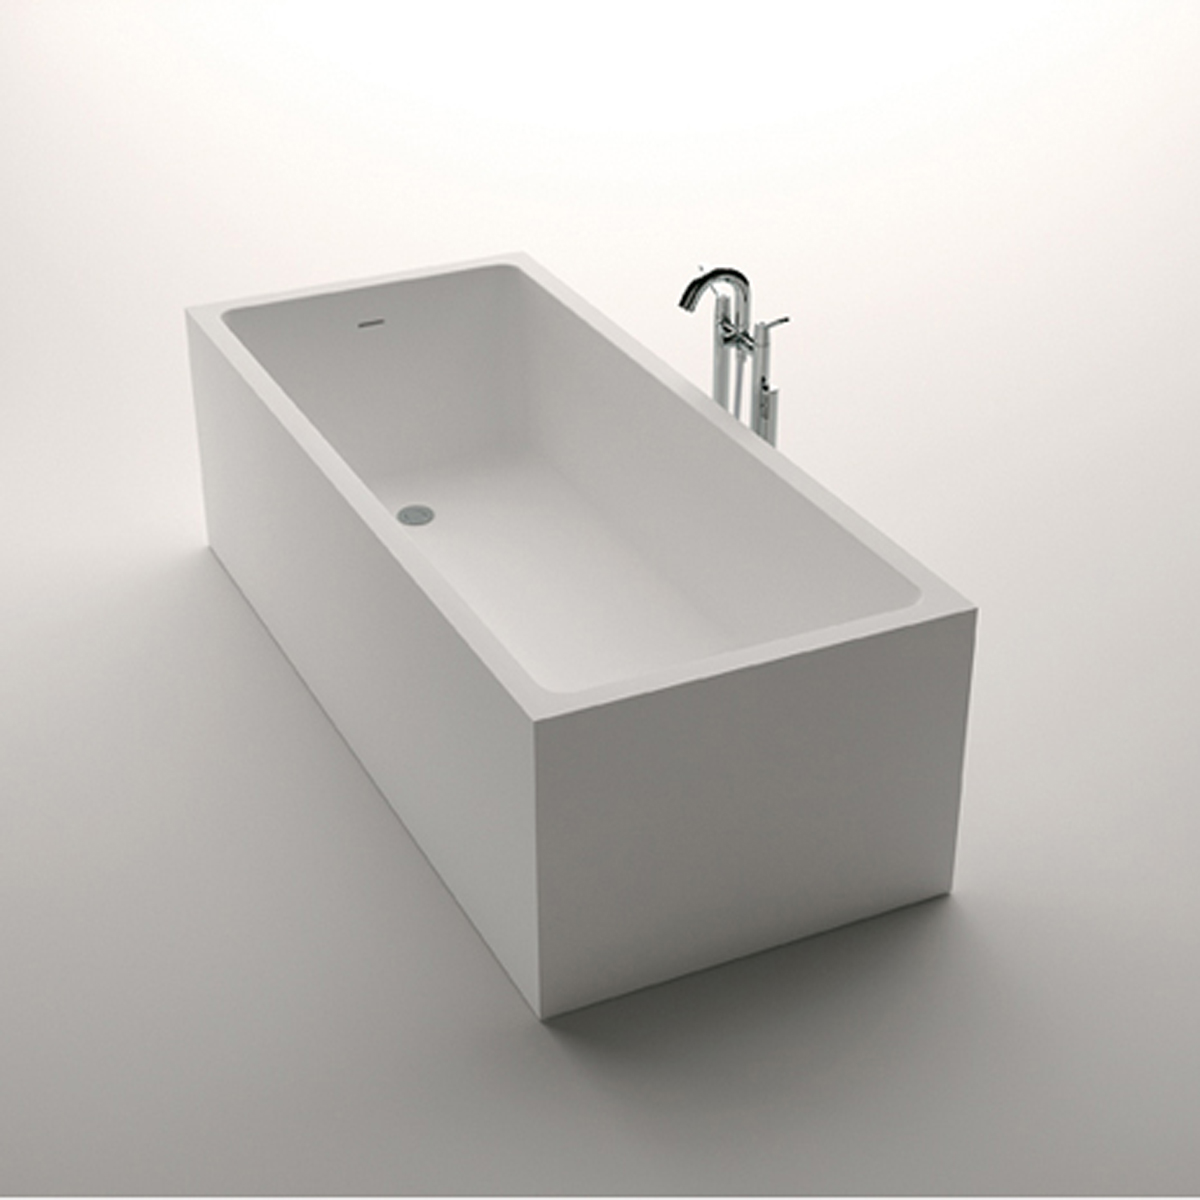 Tips on choosing a bath tub professional plumbing services for Extra long soaking tub